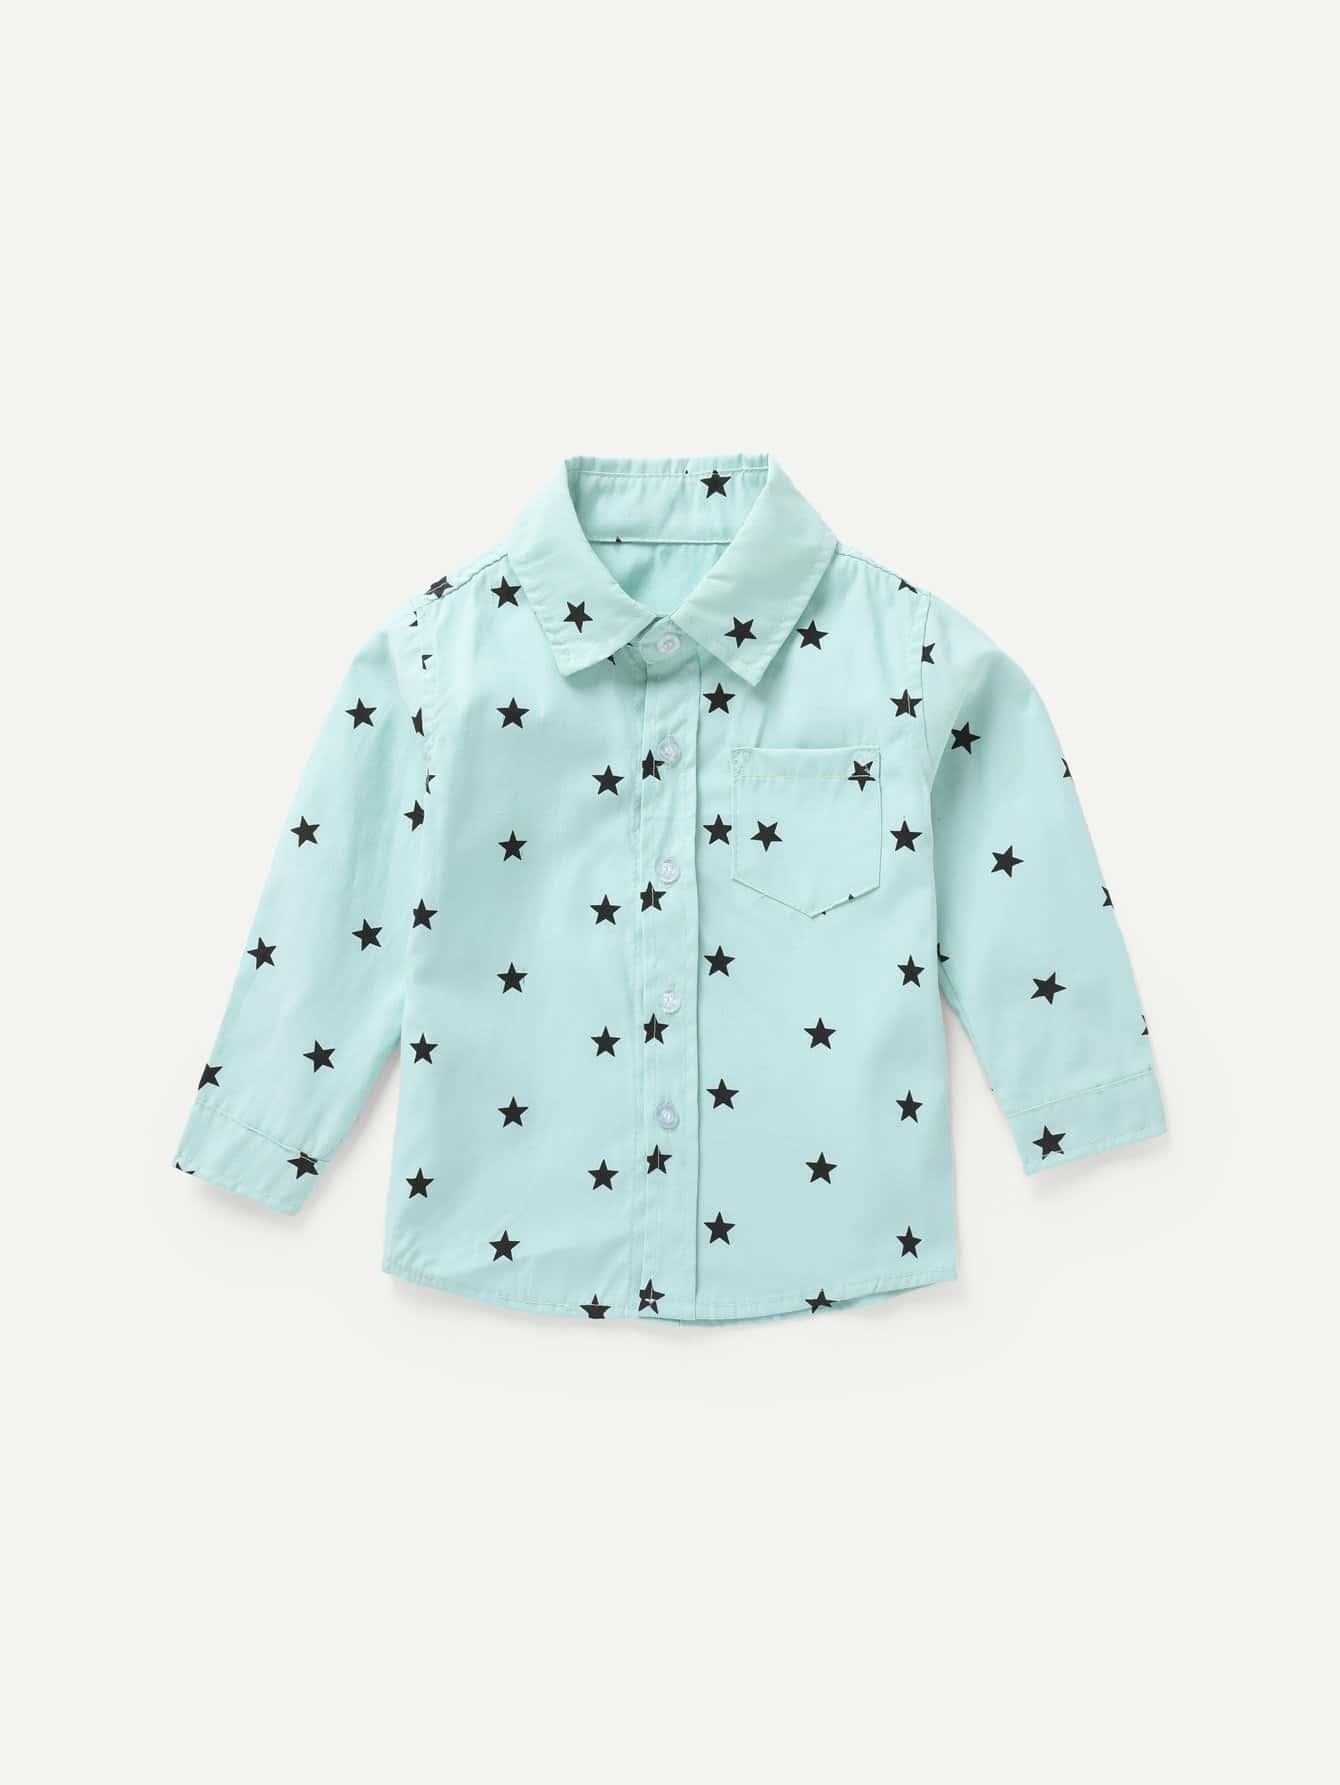 Boys Allover Star Print Shirt